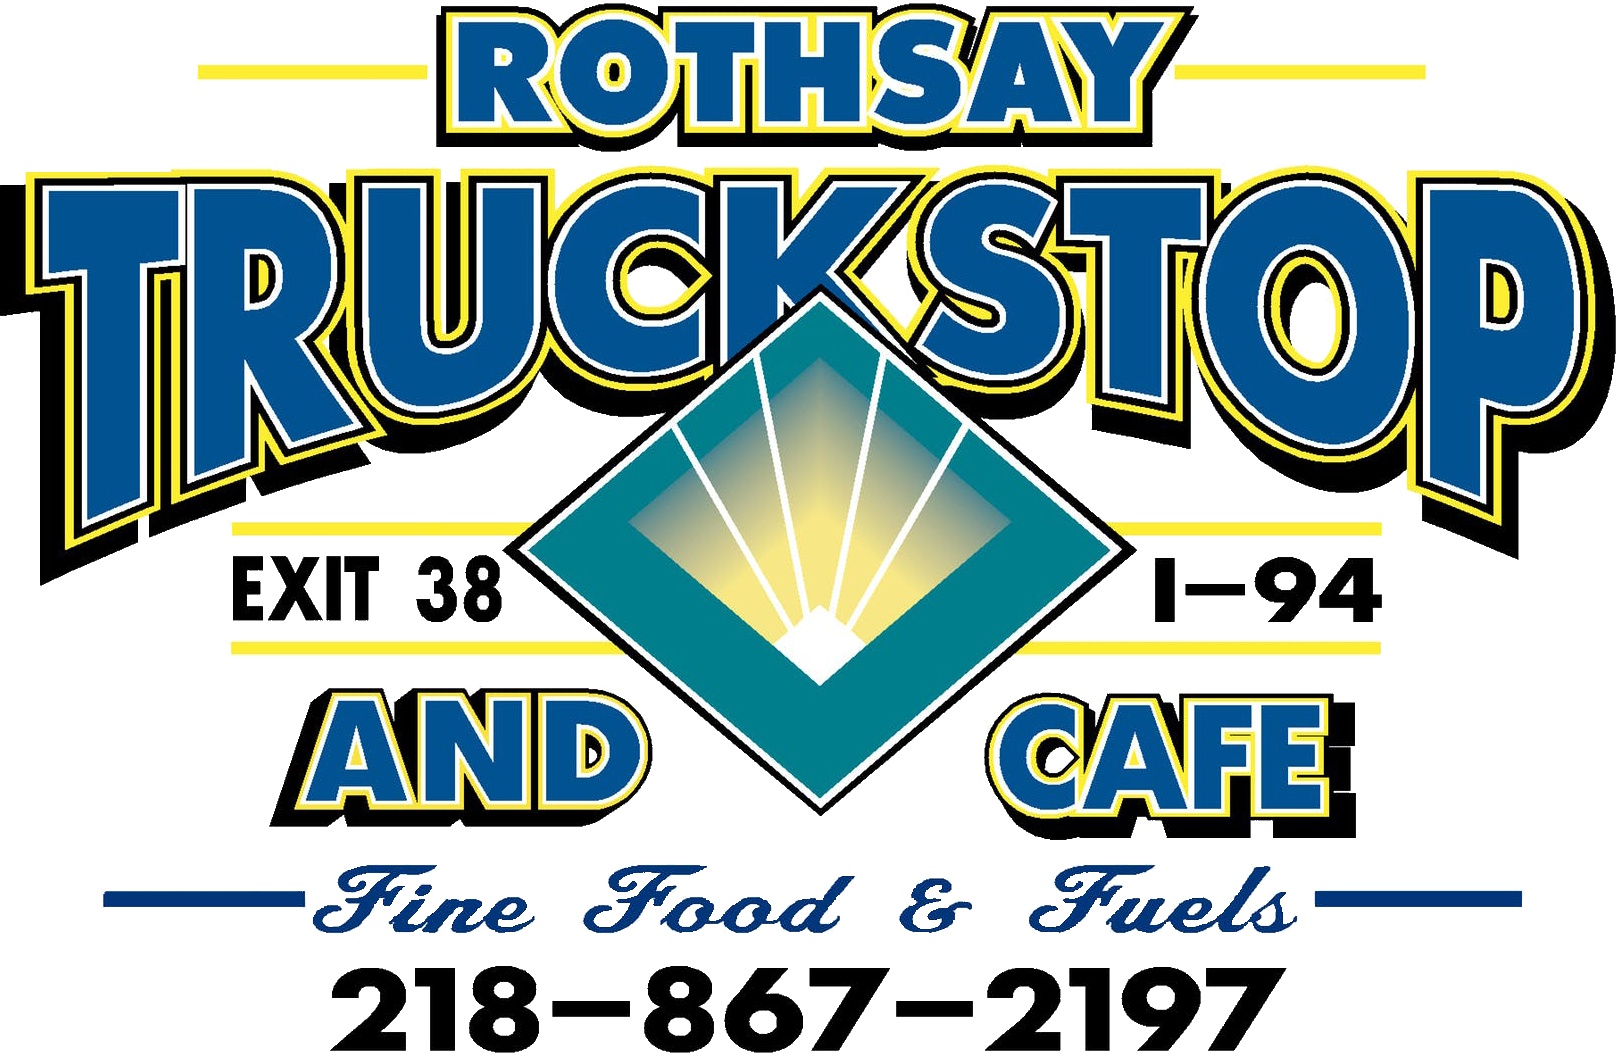 Rothsay Truck Stop Home